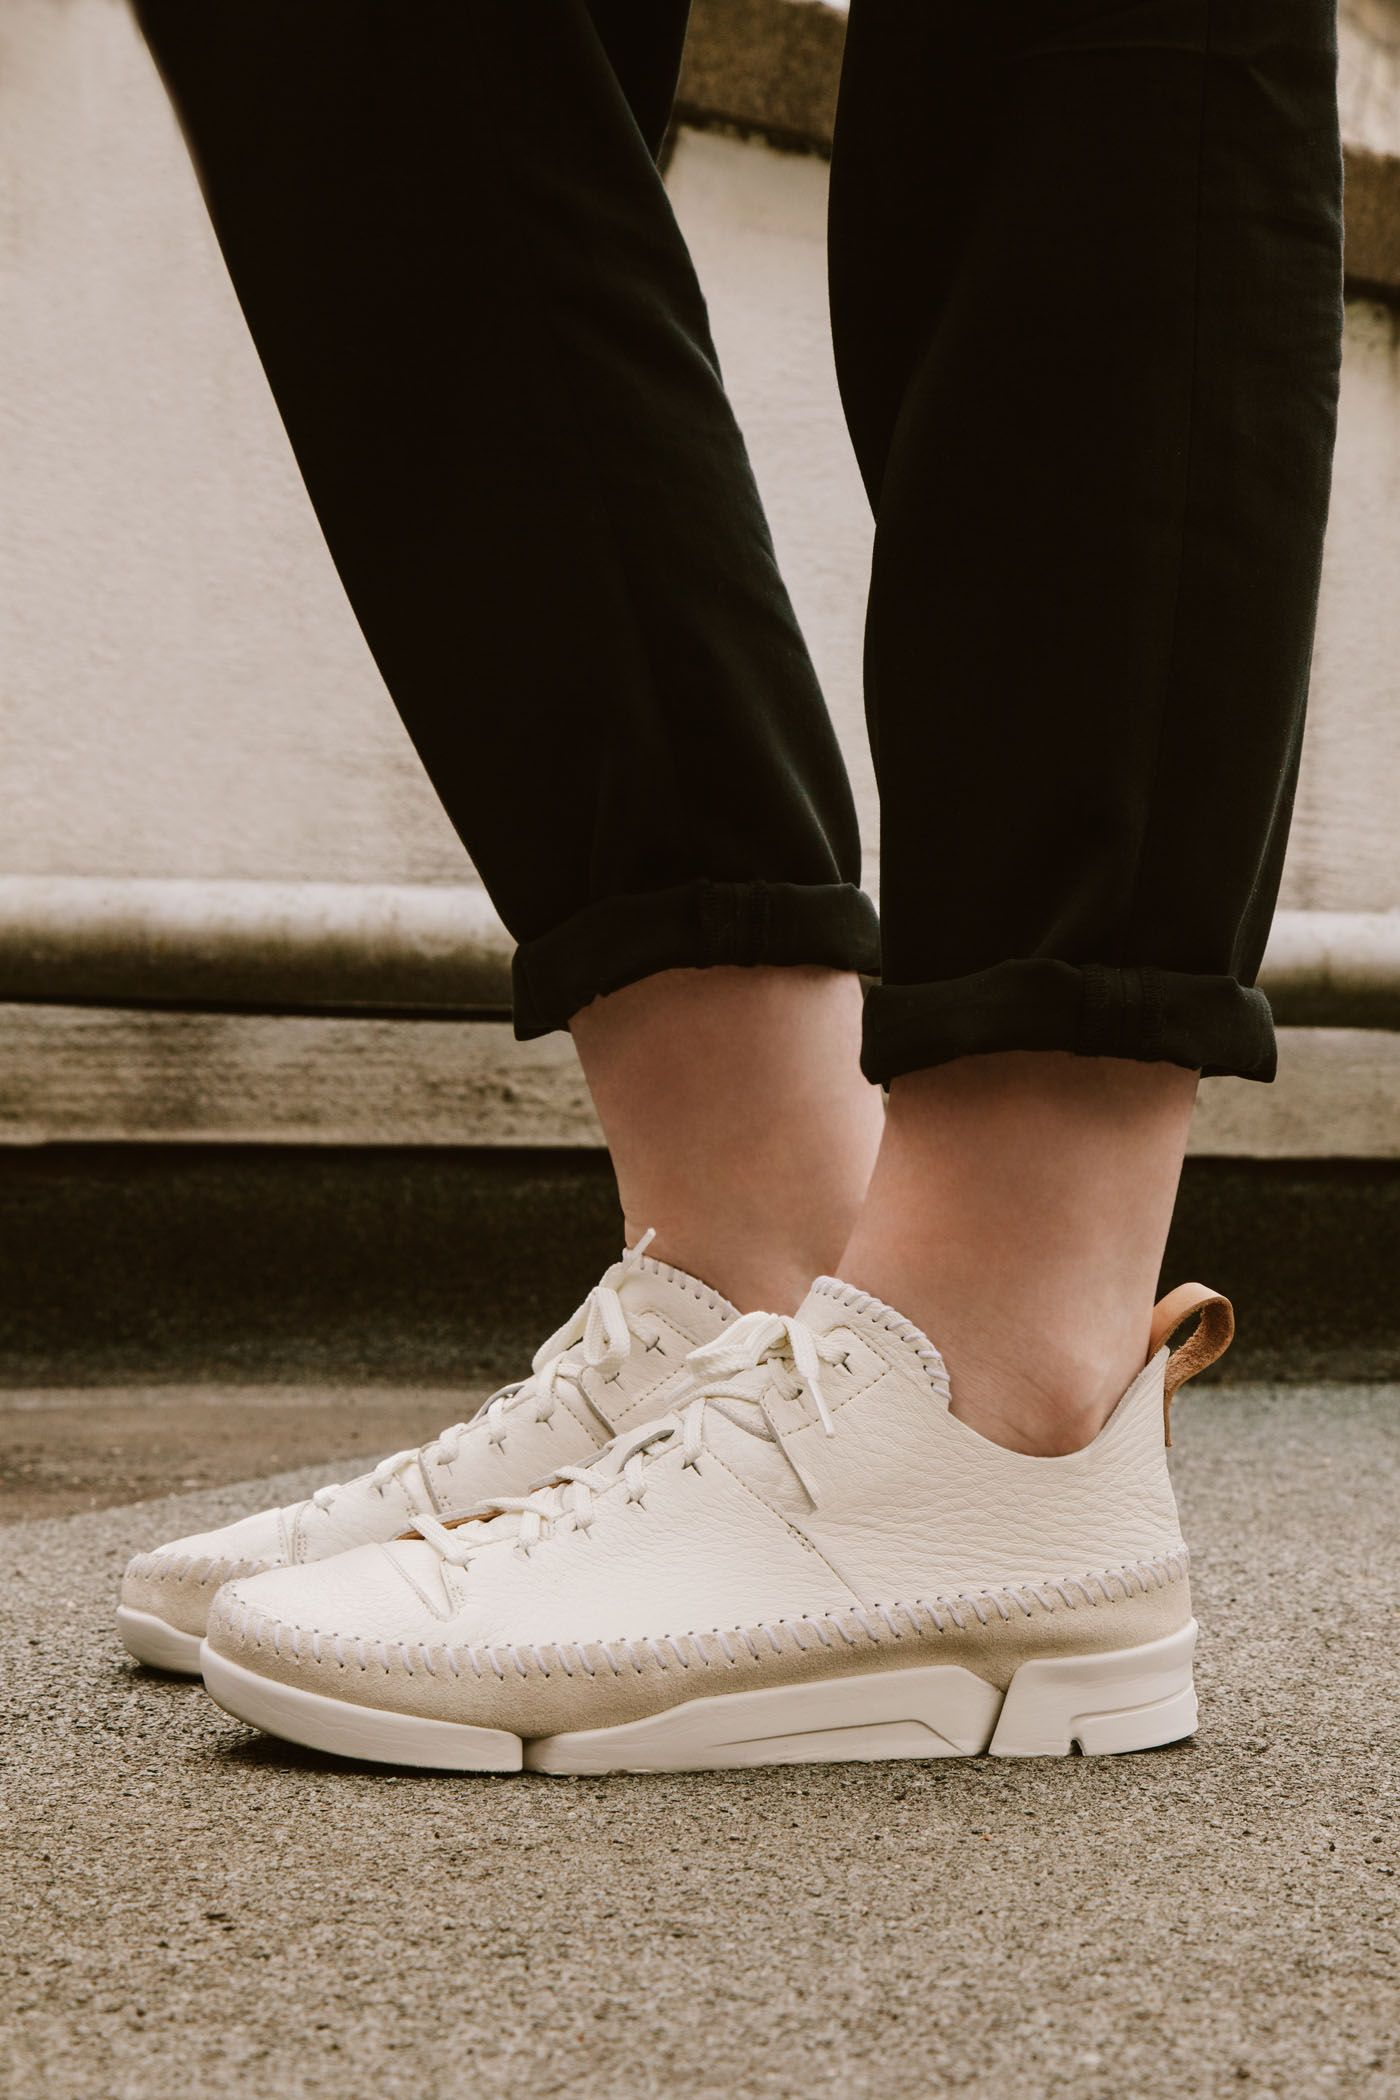 64515beea9b18b Trigenic Flex in white nubuck #ClarksOriginals #Womens #Clarks #SS15  #Trigenic #ClarksTrigenic #Sportwear #SportsLuxe #Shoes